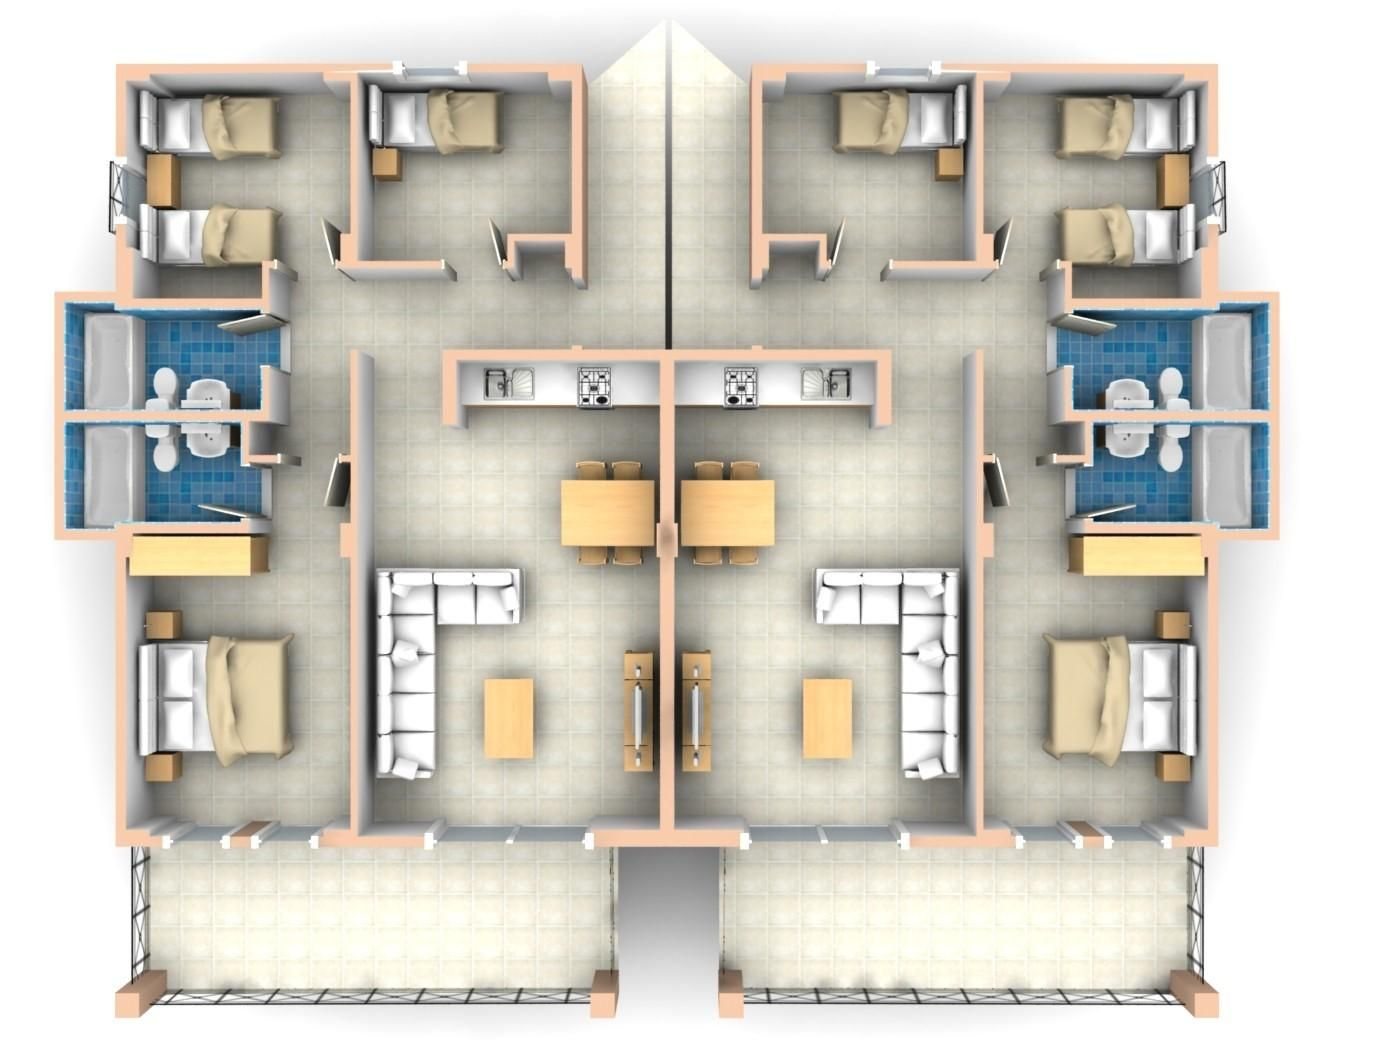 Small 3 Bedroom Apartment Floor Plans At Trend Desk Ideas Related Post Of House Flooring Three Bedroom House Apartment Floor Plans